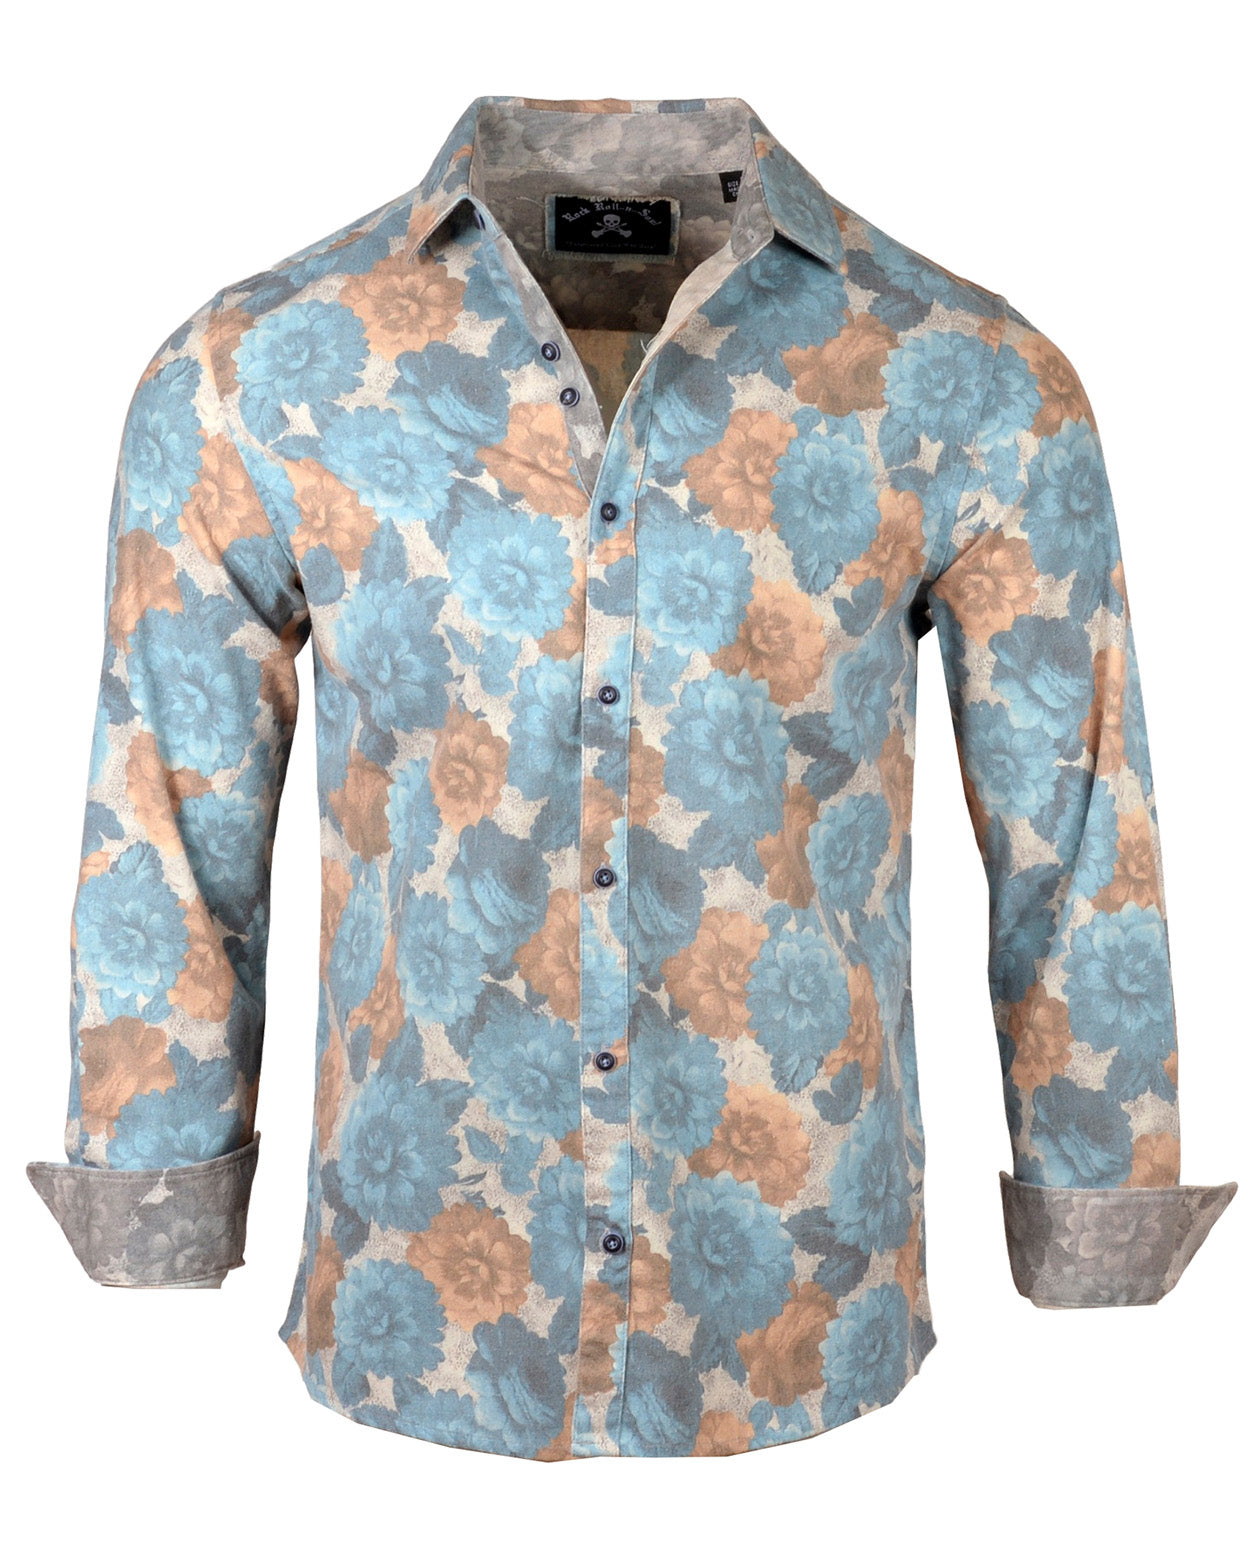 Men's Casual Fashion Button Up Shirt - Two Tickets to Paradise by Rock Roll n Soul